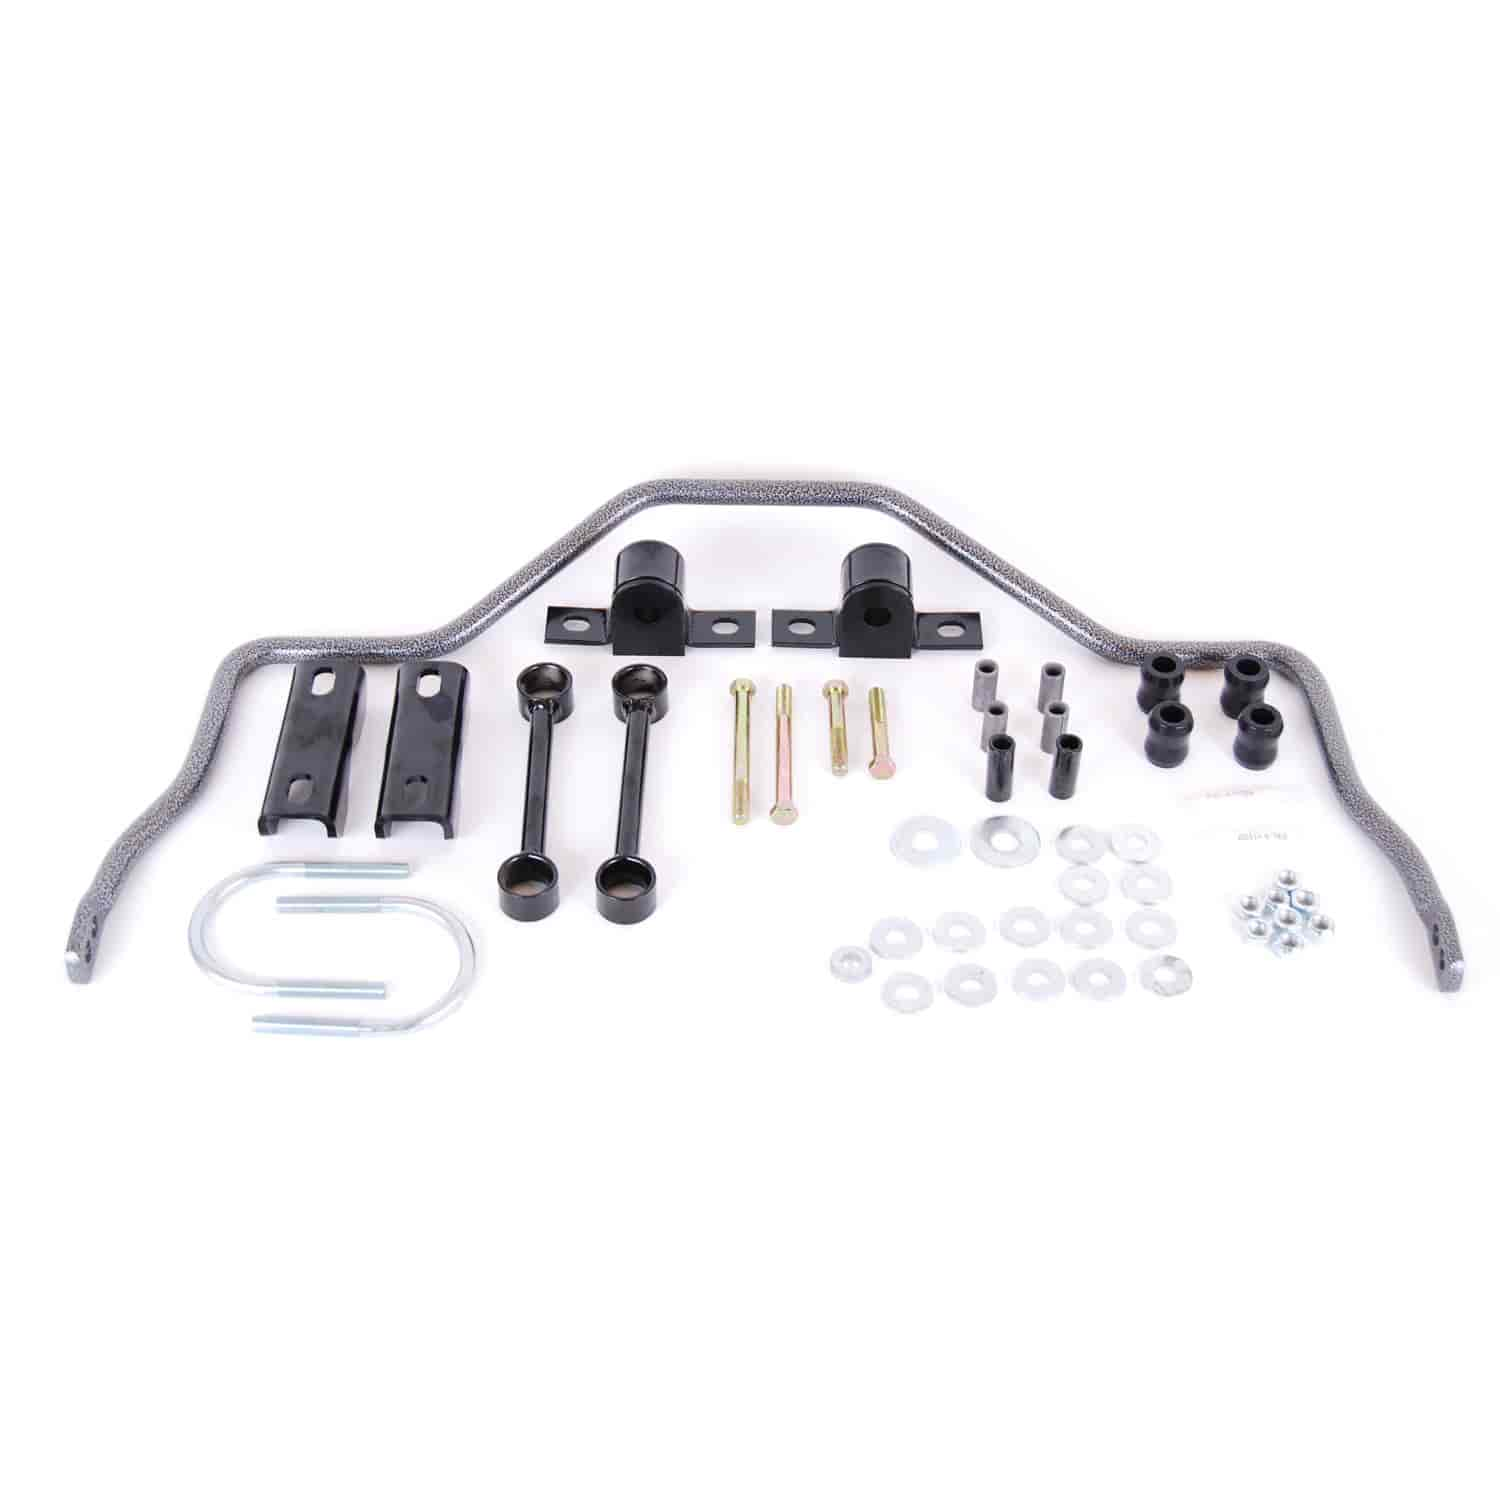 Hellwig Rear Sway Bar For Ford Mustang And